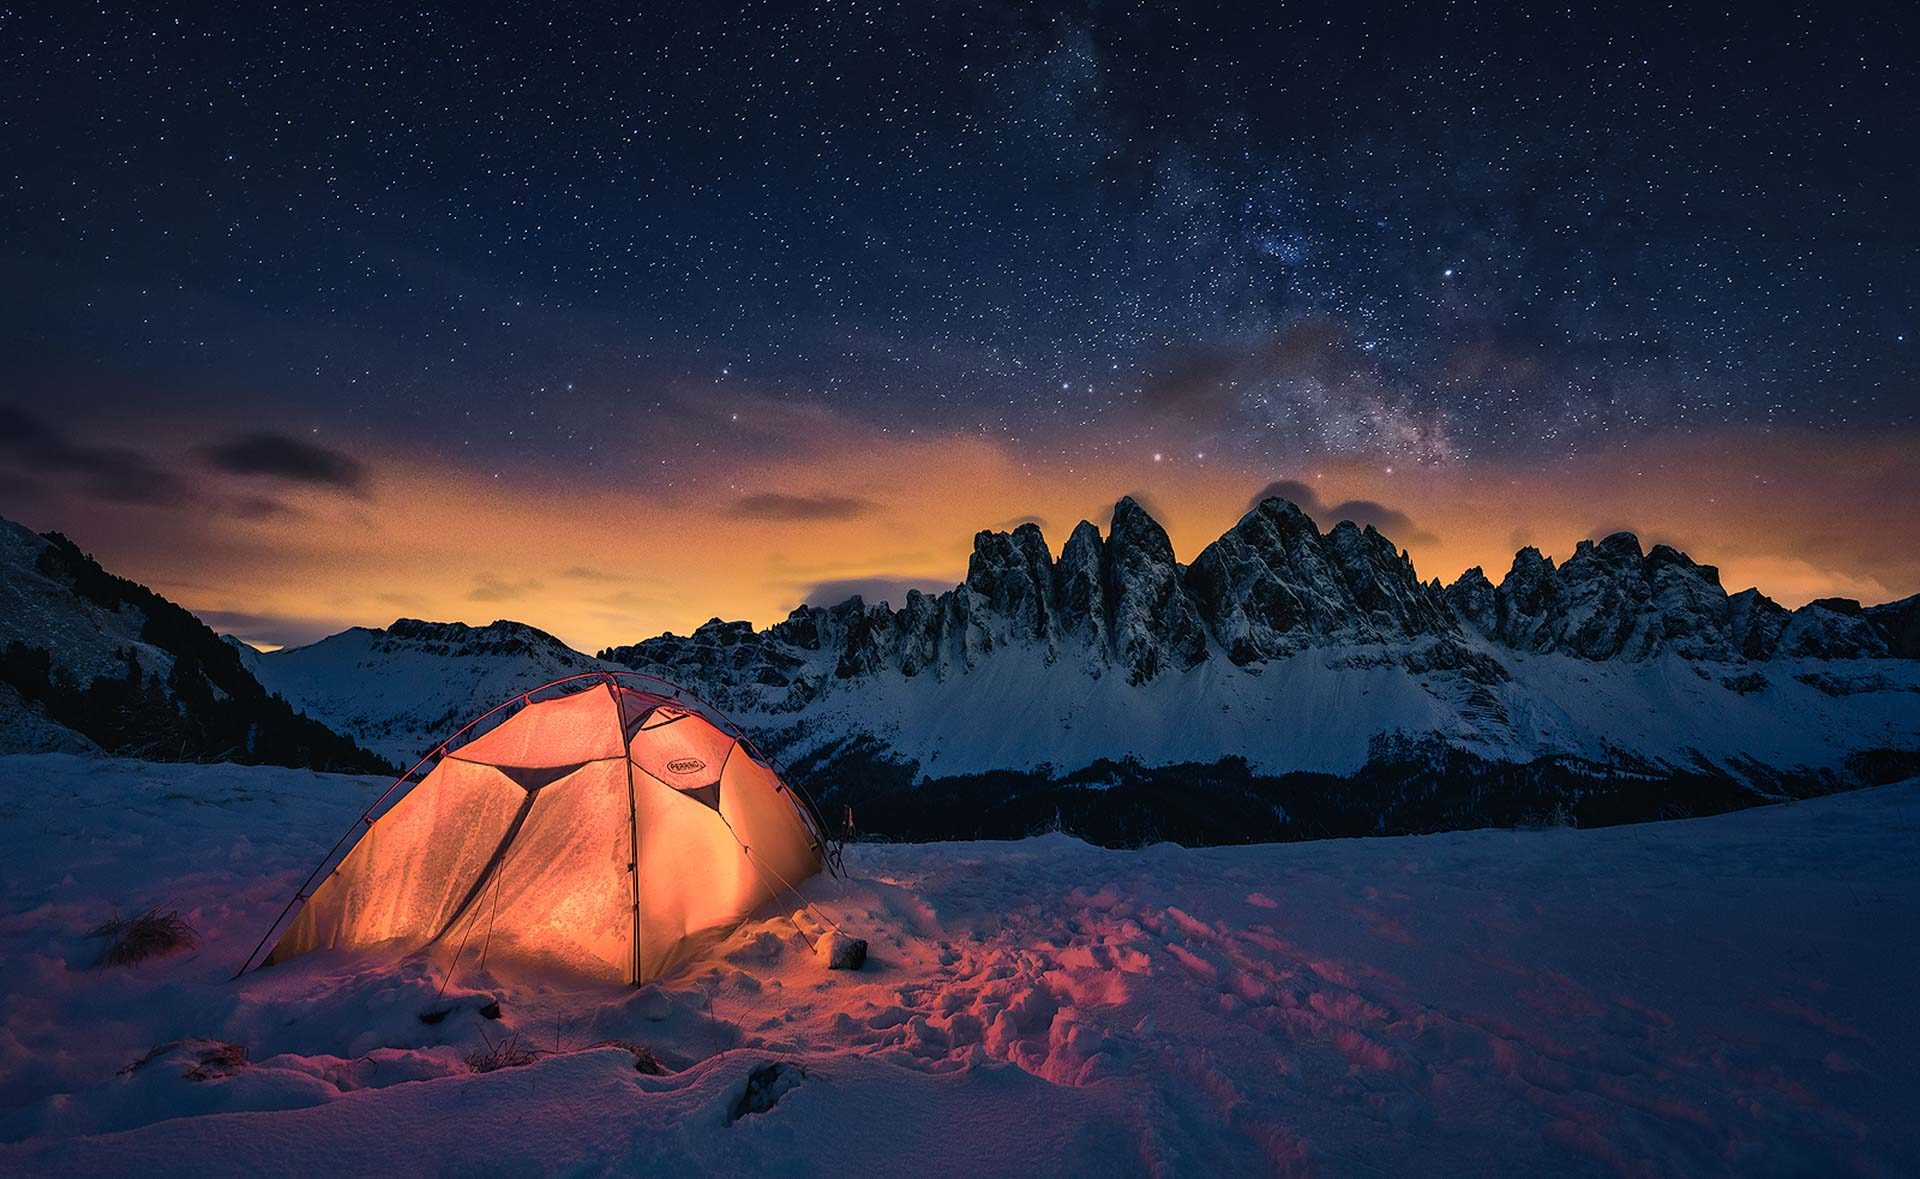 Milky Way Dolomites night tent stars mountain